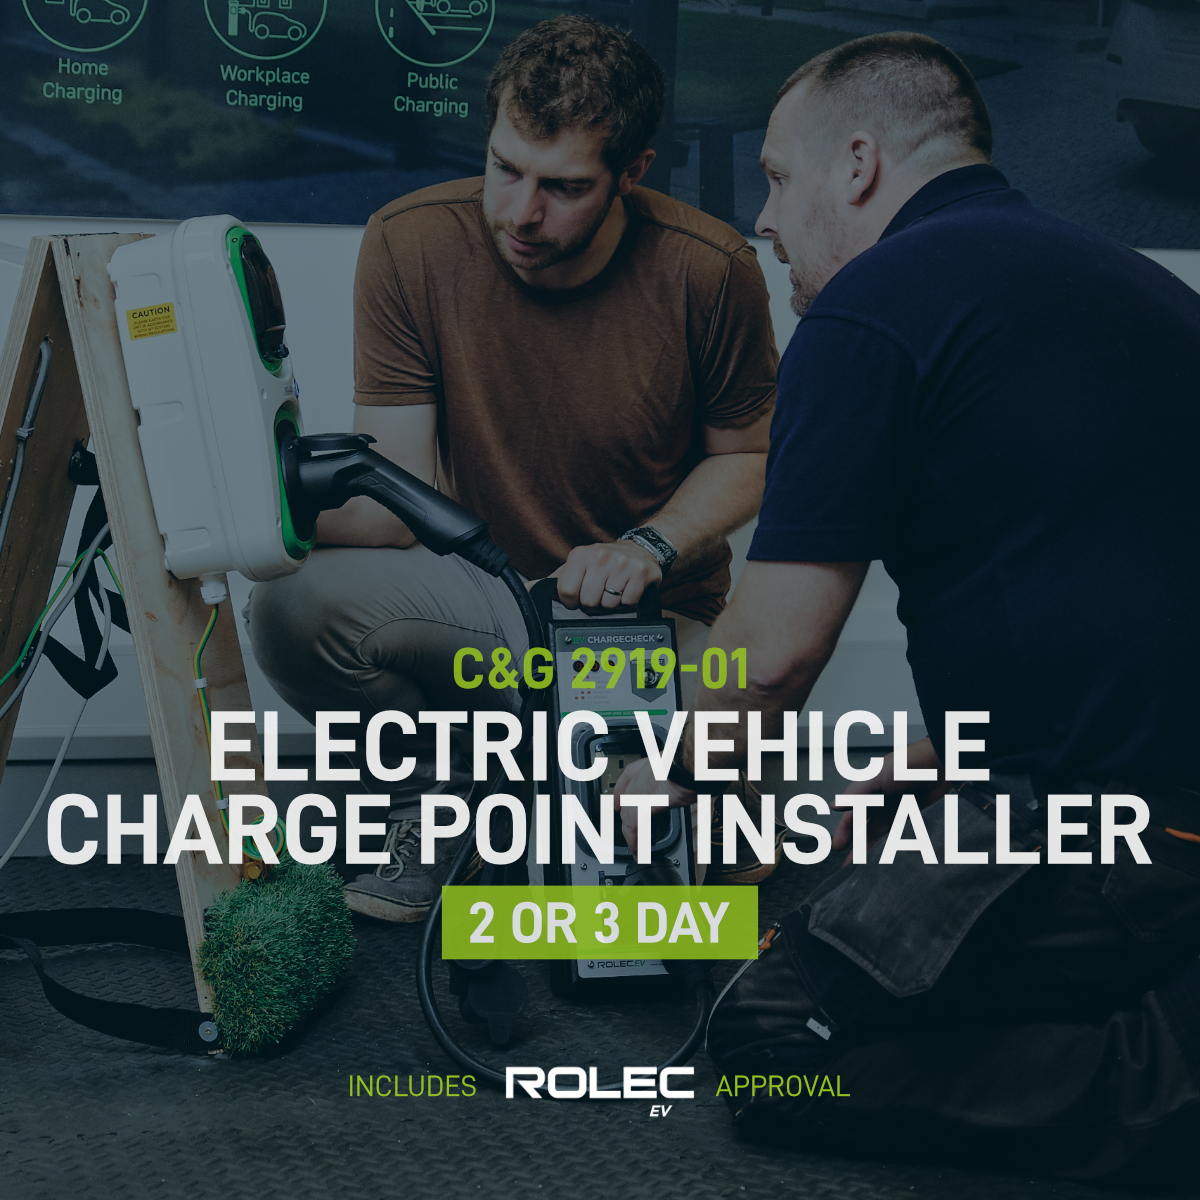 Electric Vehicle Charge Point Installer 2 or 3 Day